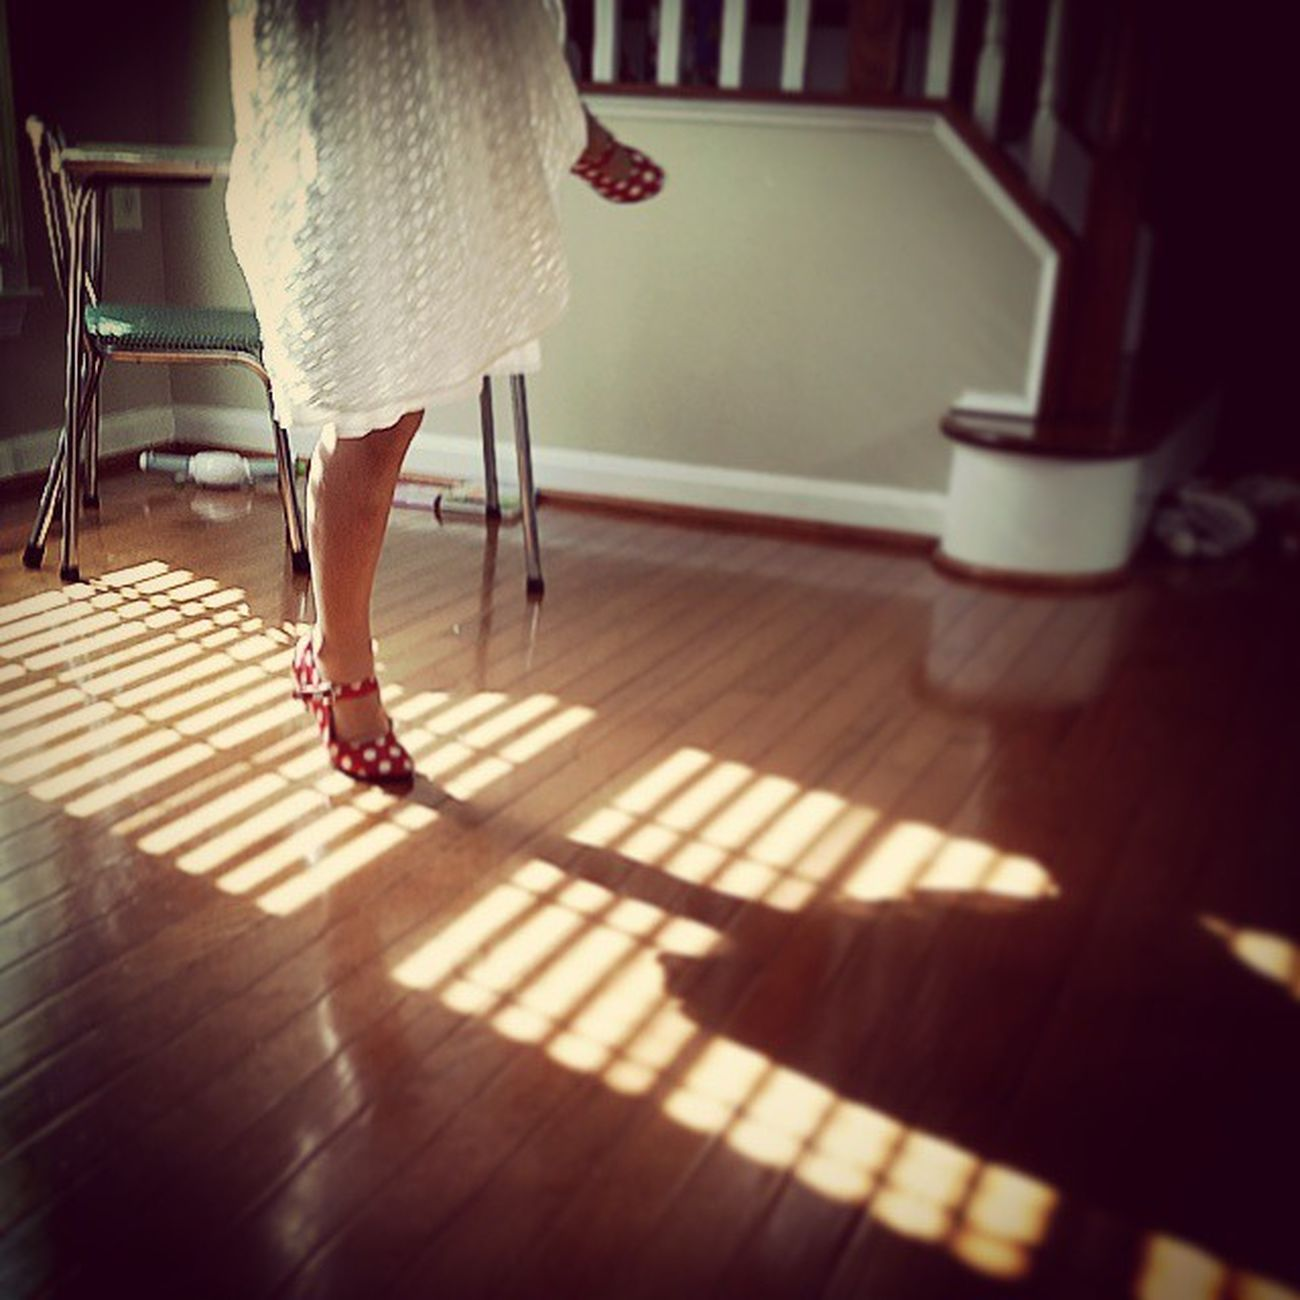 Day 42 Tapping Her Toes Childhood Project365 Dancing With Shadows Puddlewonderful365 Unforgettableinstagram Mommytweet